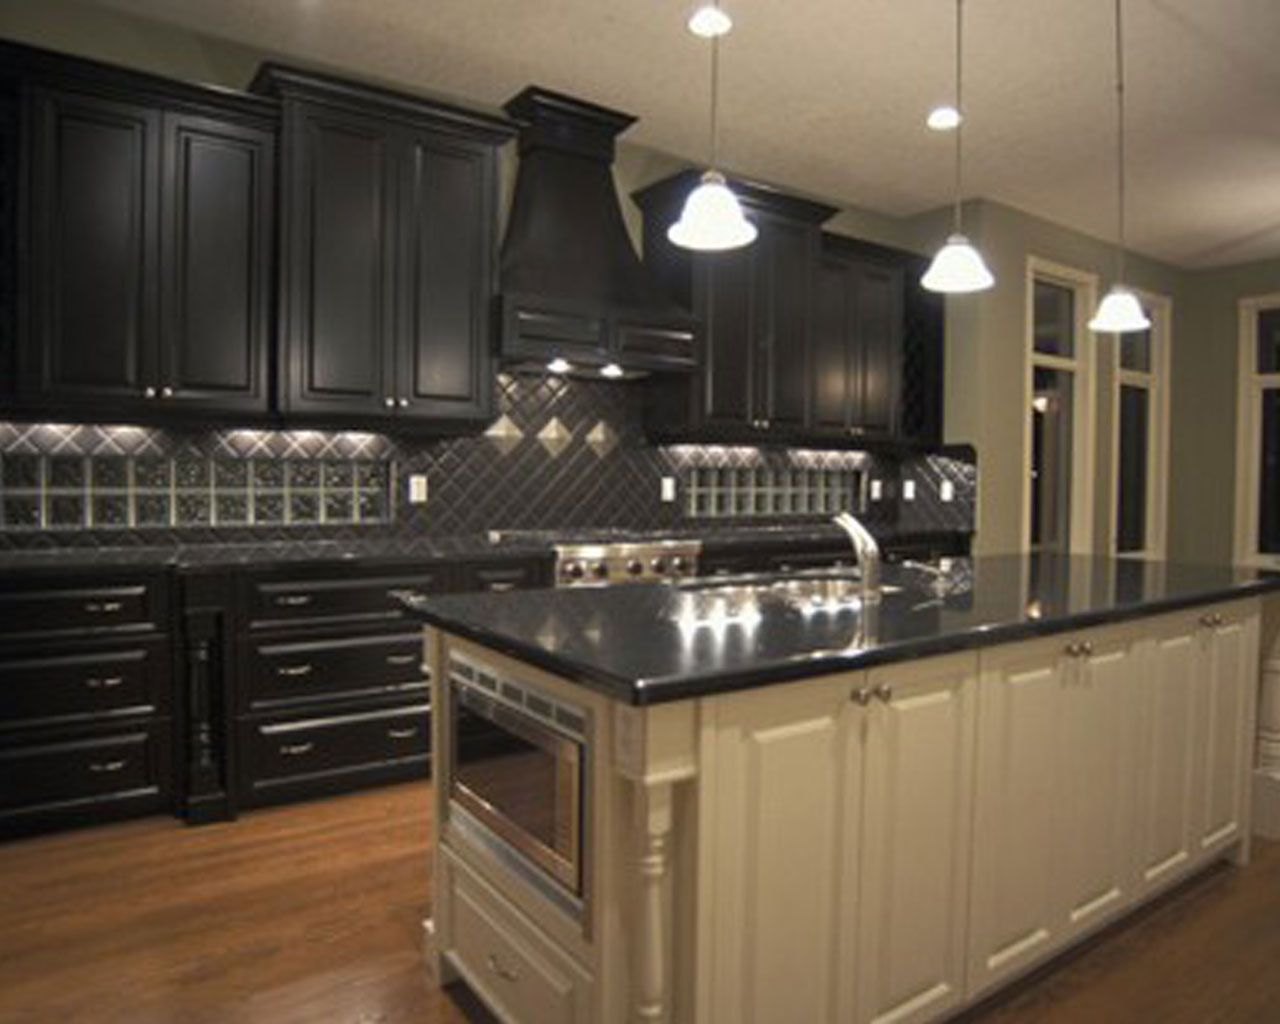 Finest design black kitchen cabinets wallpapers new - Black kitchen cabinets small kitchen ...